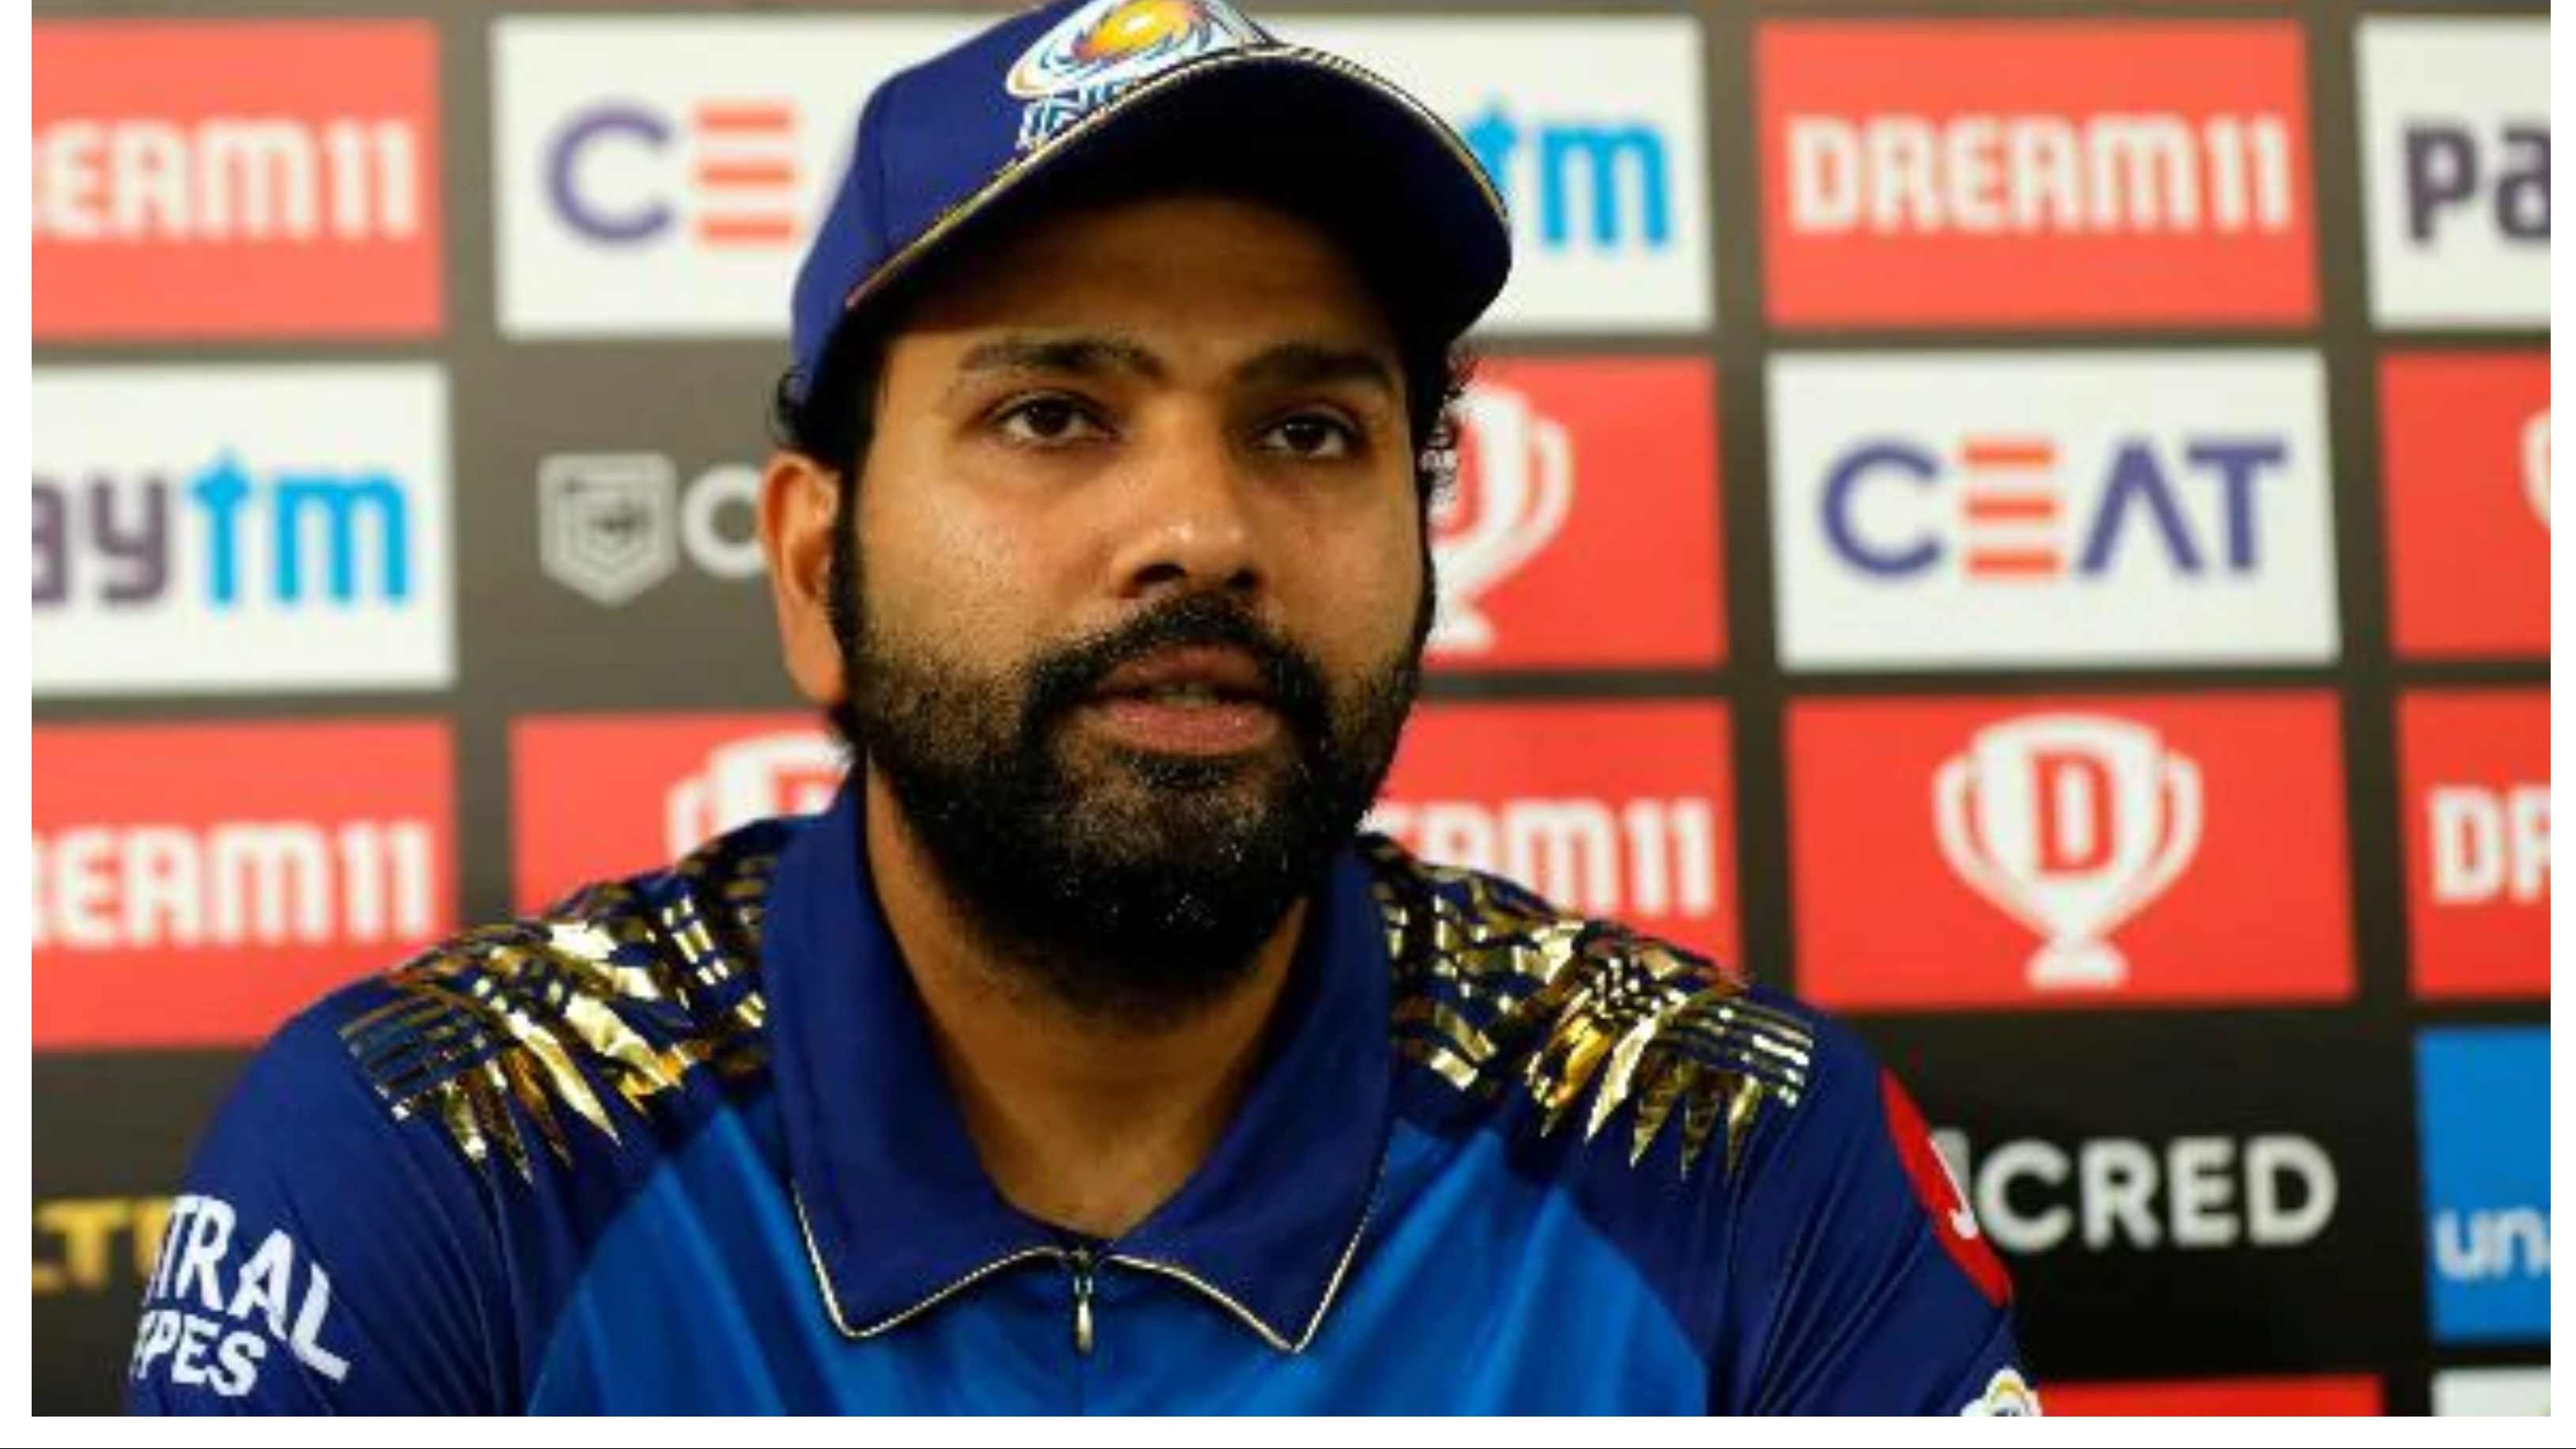 IPL 2020: Rohit Sharma reckons MI will have 'a little bit psychological advantage' over DC in the final